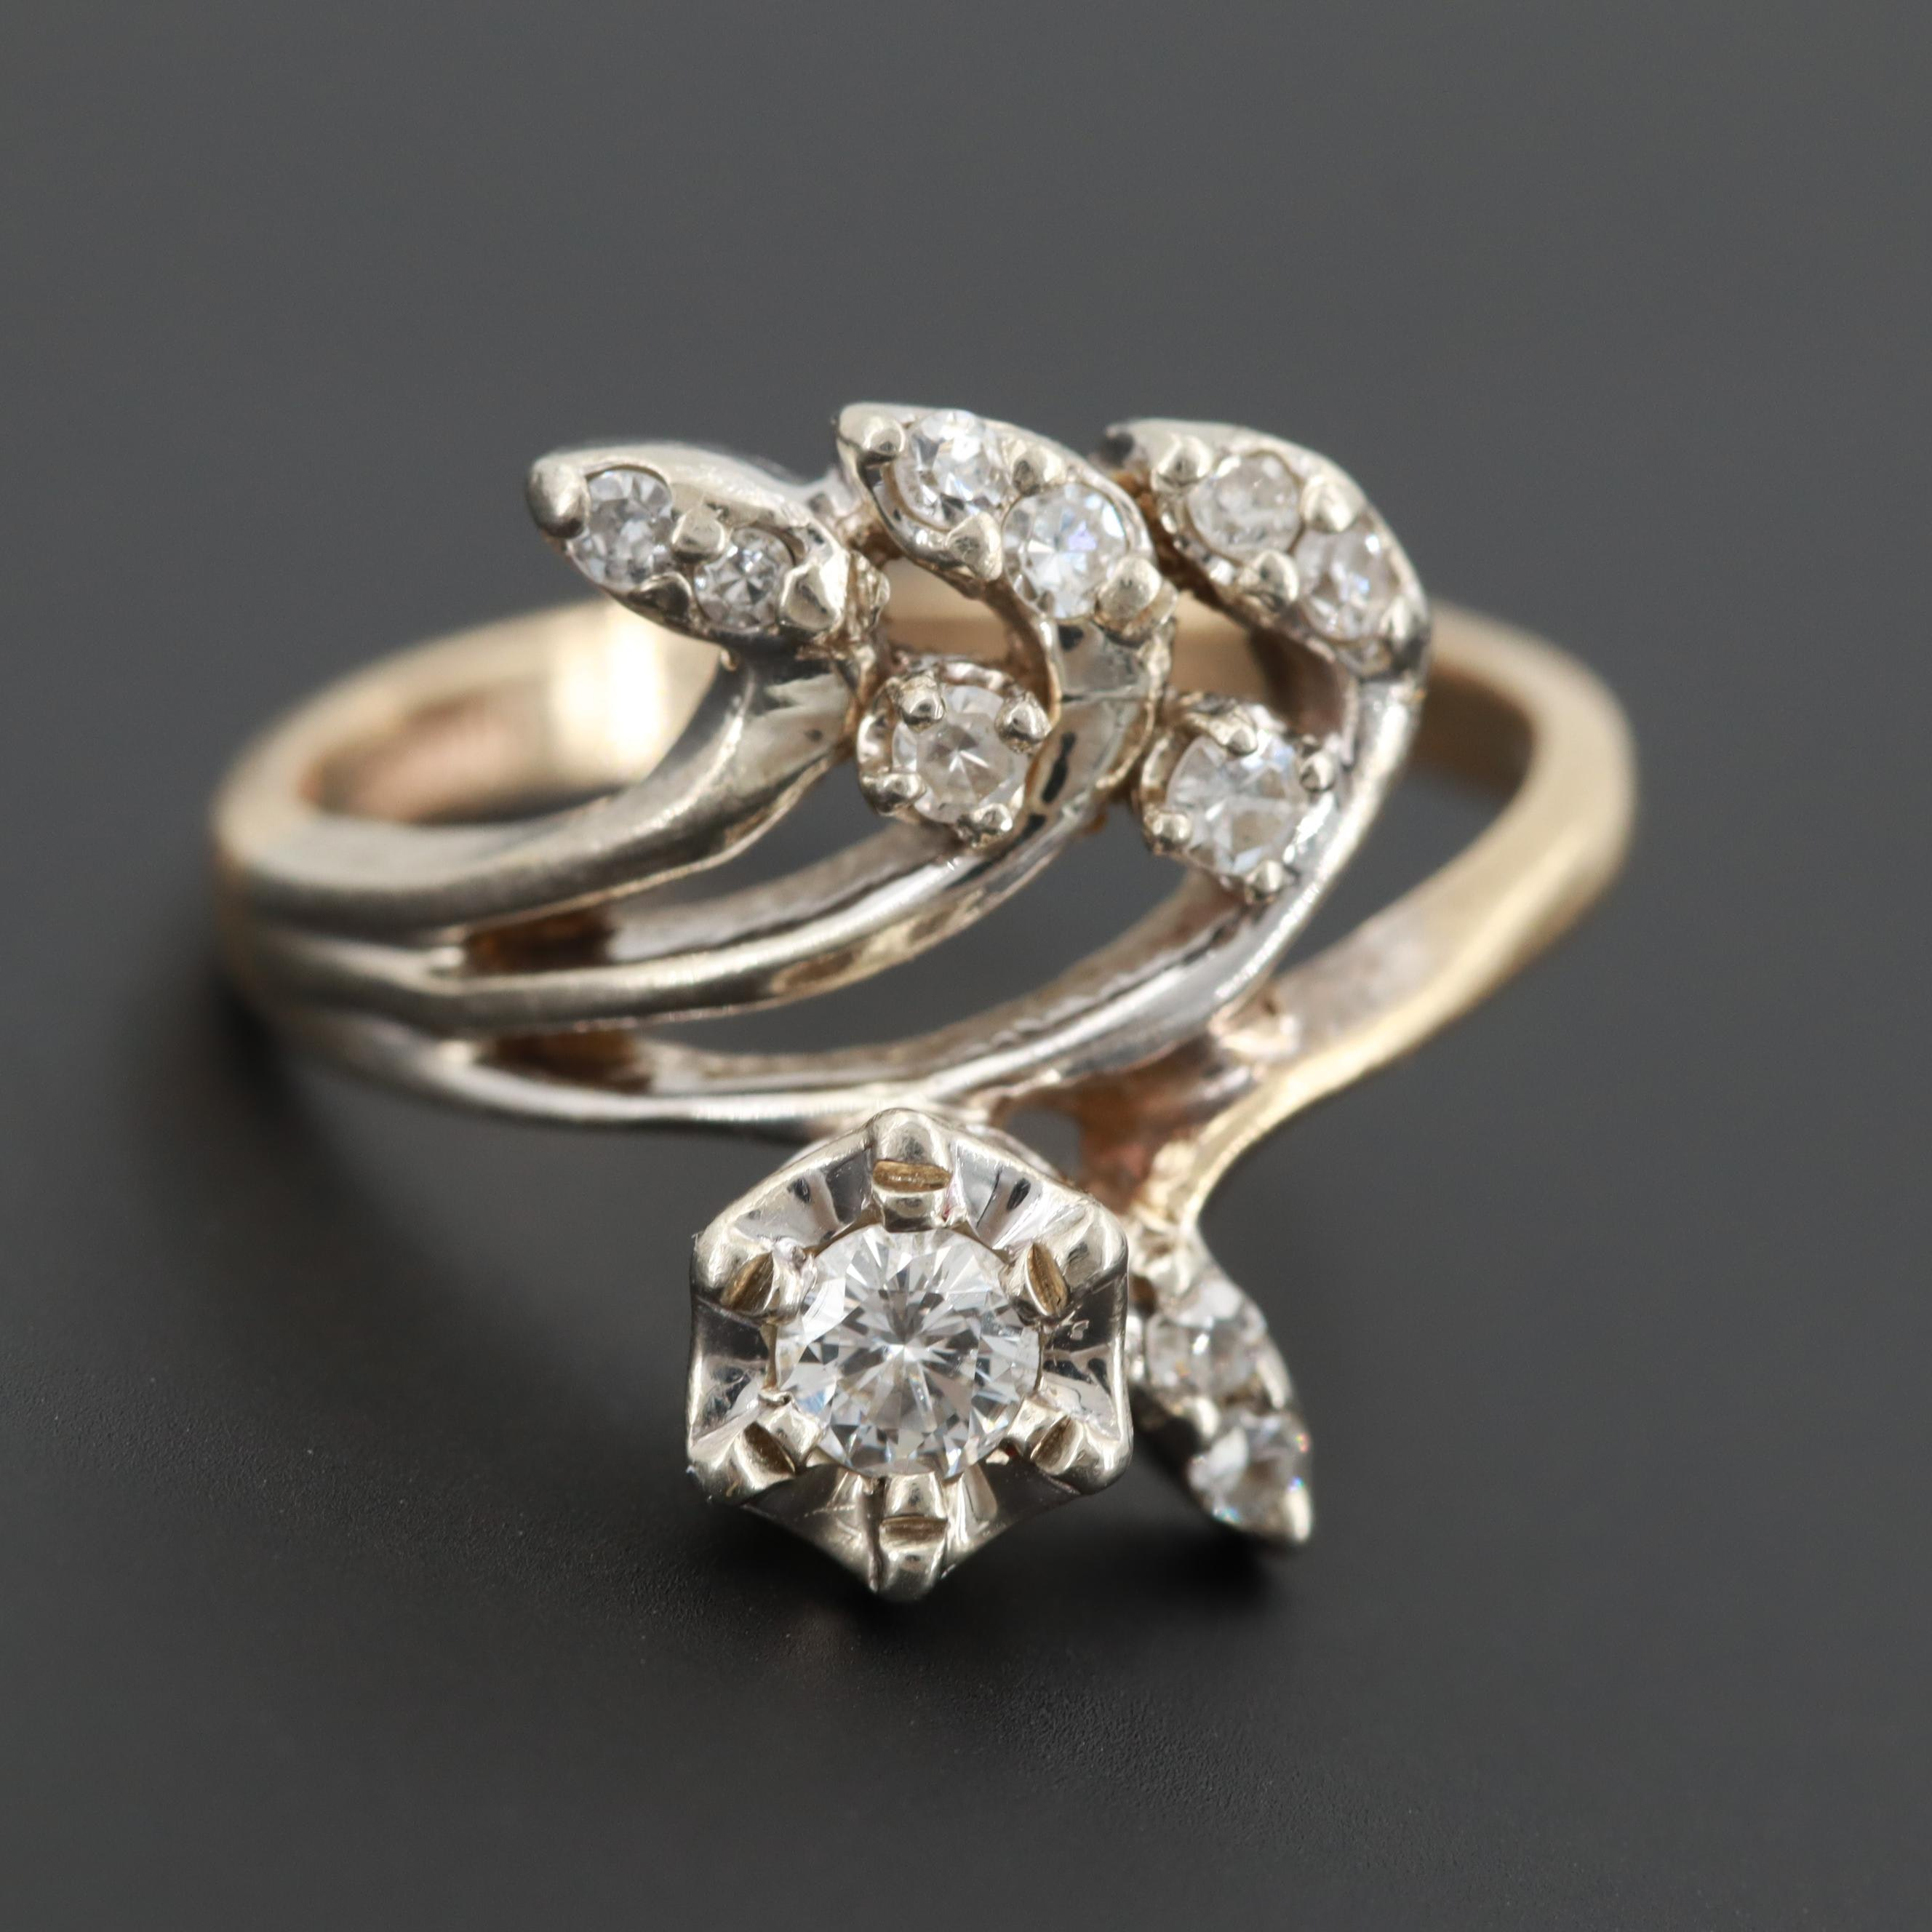 14K Yellow Gold Diamond Ring with 14K White Gold Setting